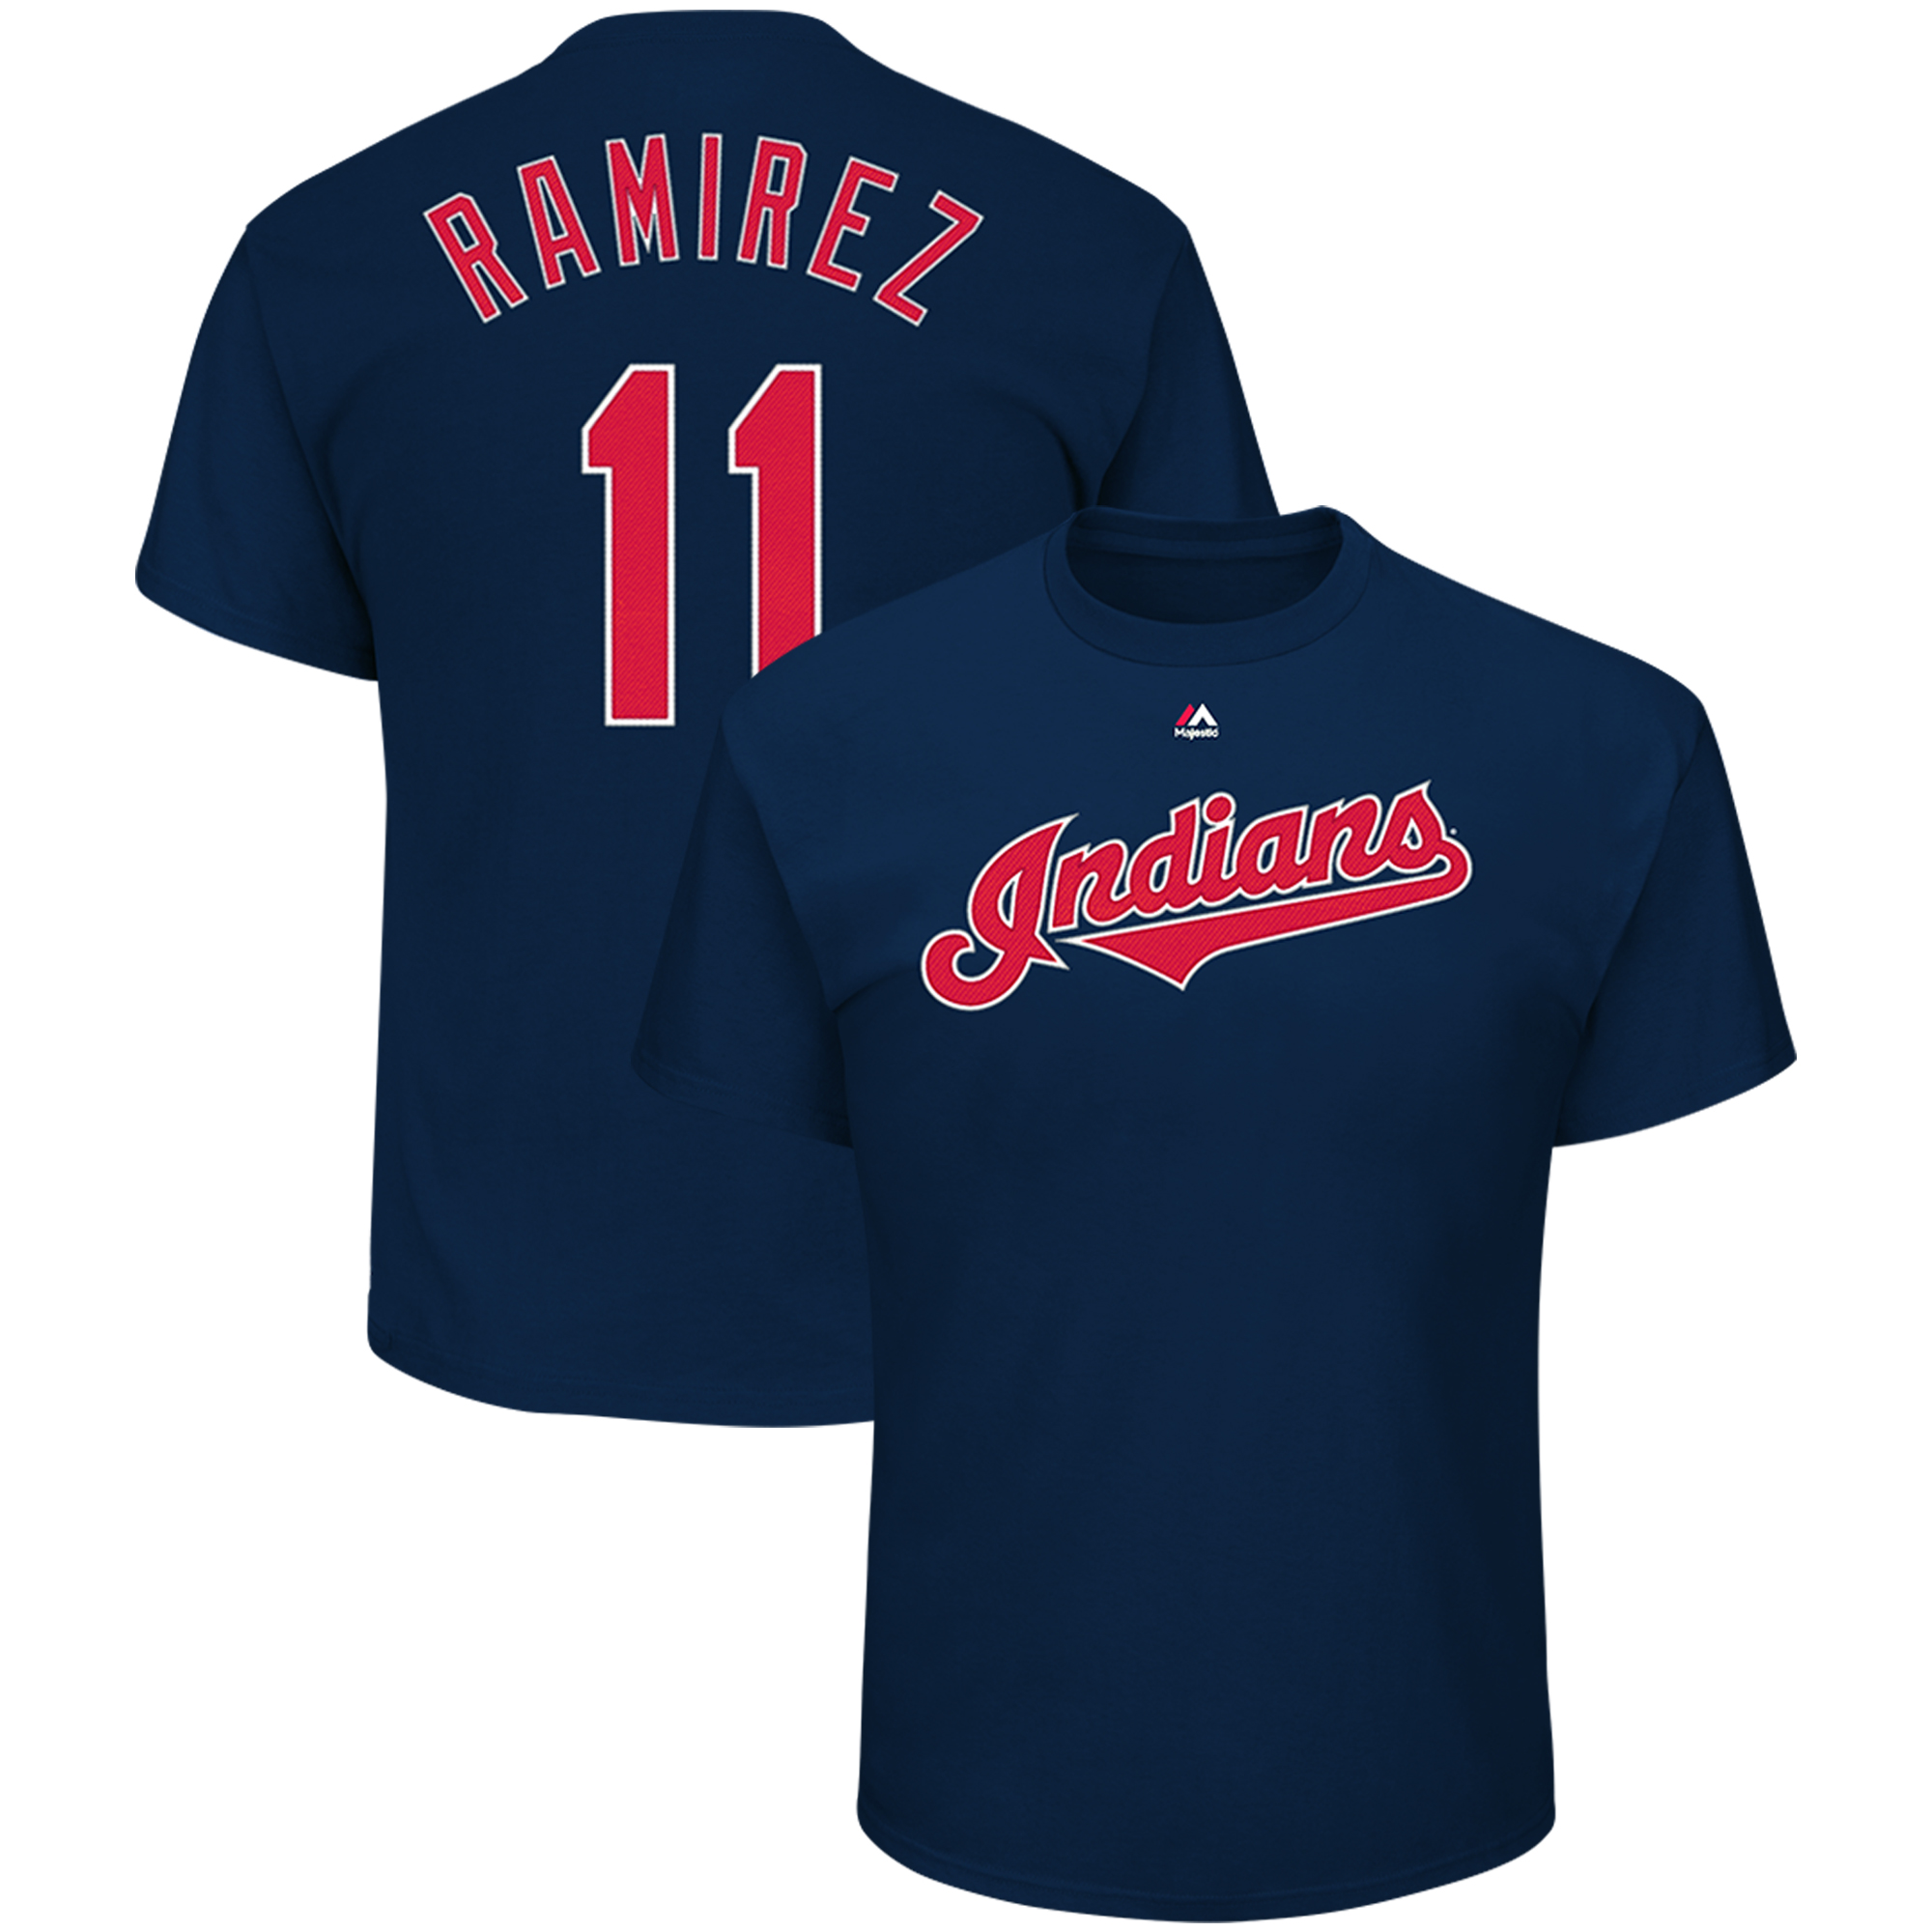 Jose Ramirez Cleveland Indians Majestic Official Name & Number T-Shirt - Navy